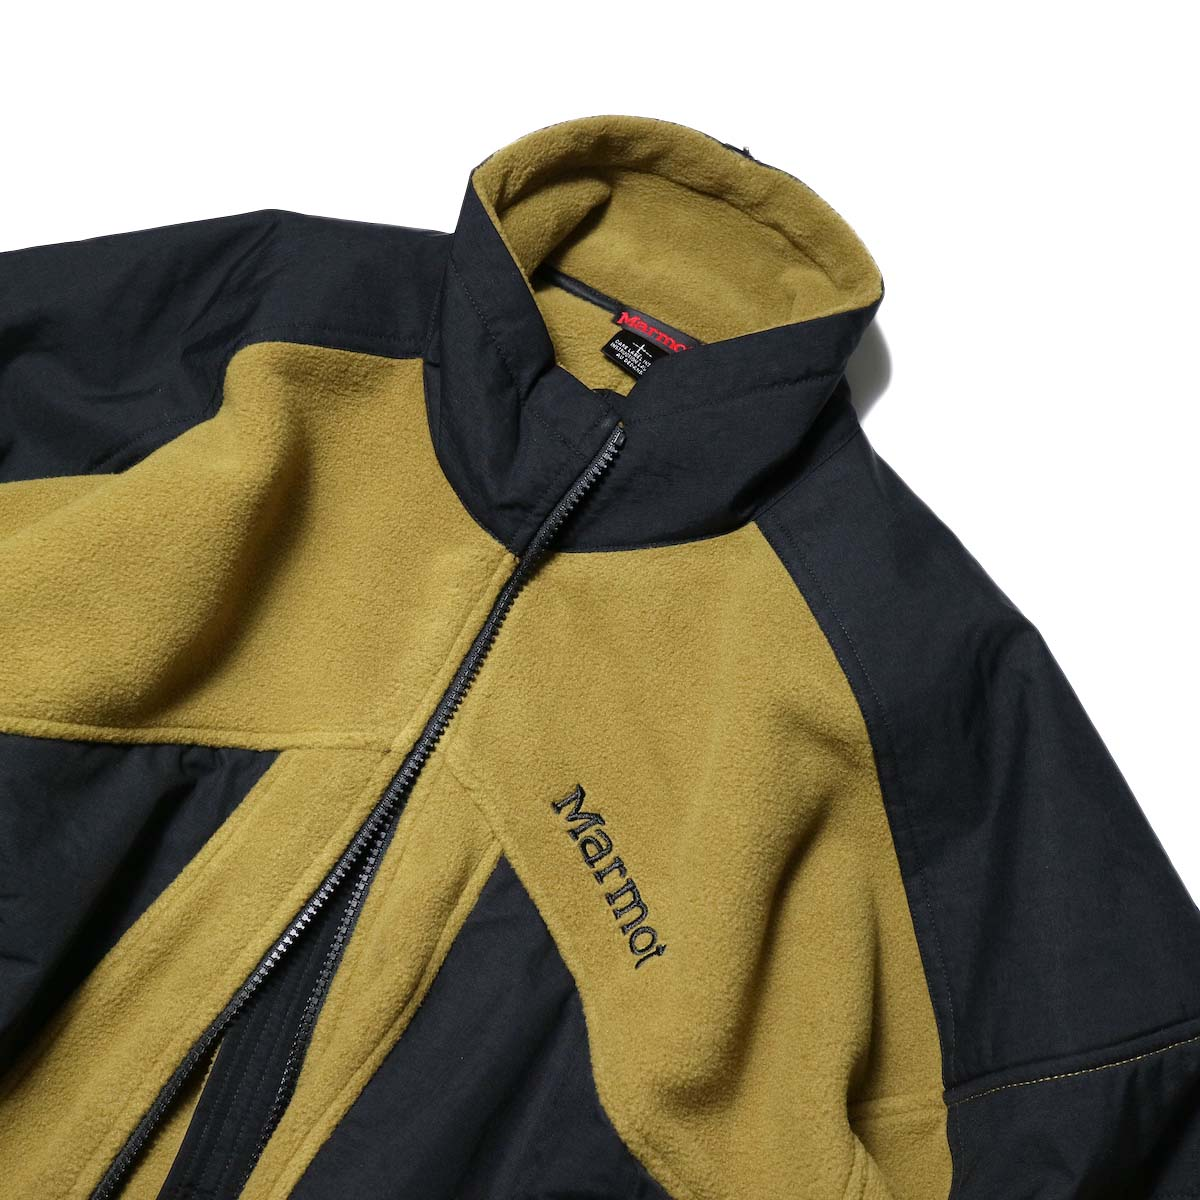 Marmot Histric Collection / Alpinist Tech Sweater (Coyote×Black)襟